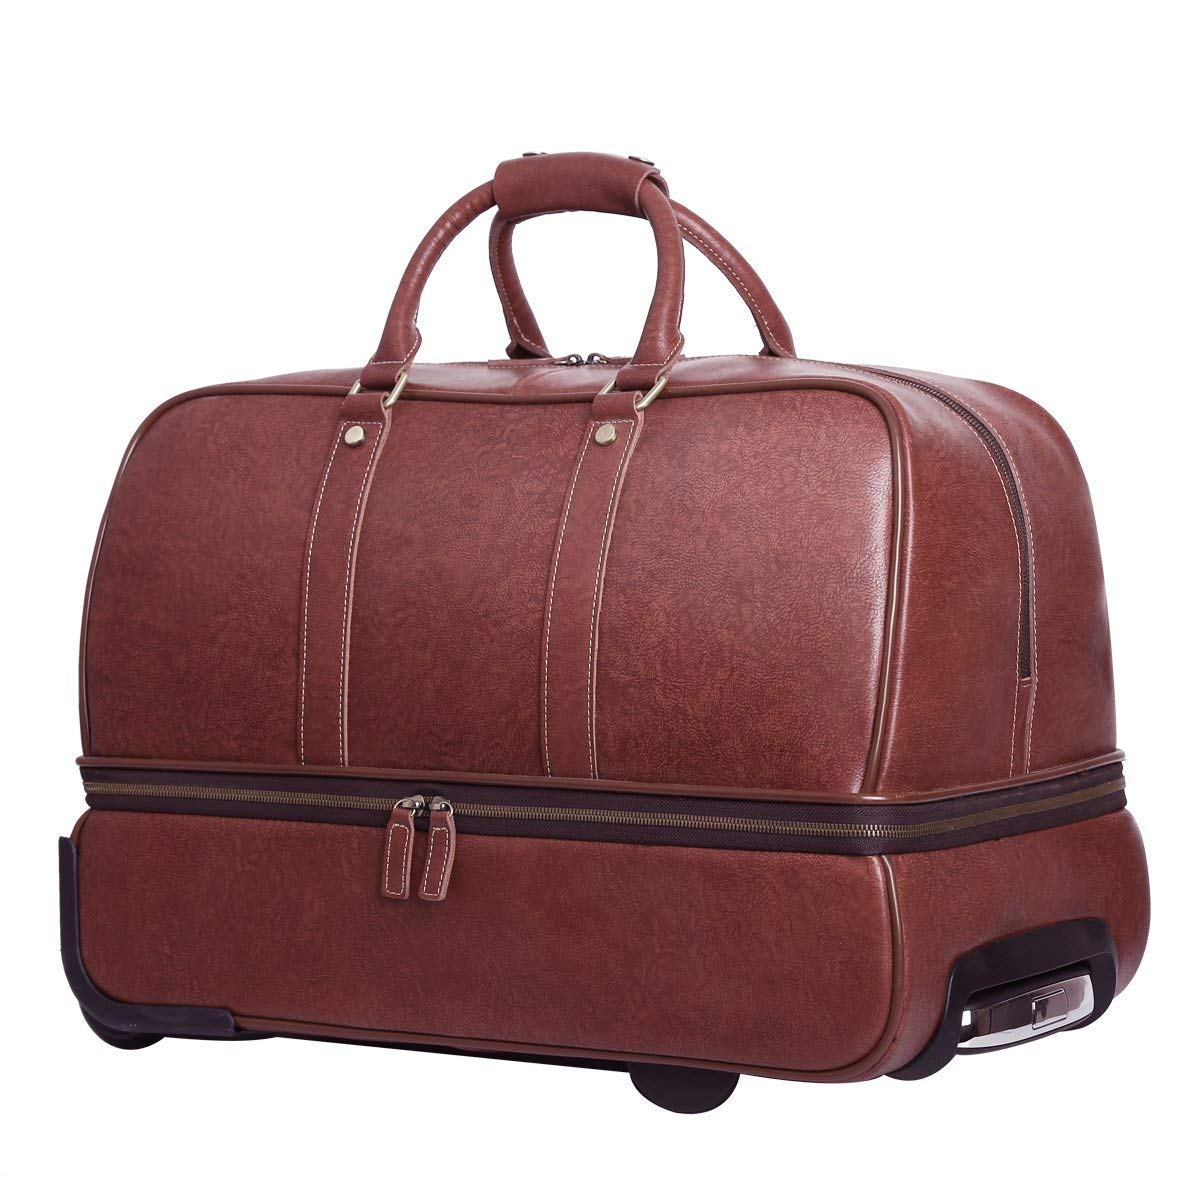 Amazon.com | Leathario Leather Luggage travel duffle bag weekend overnight bag (Burgendy) | Travel Duffels